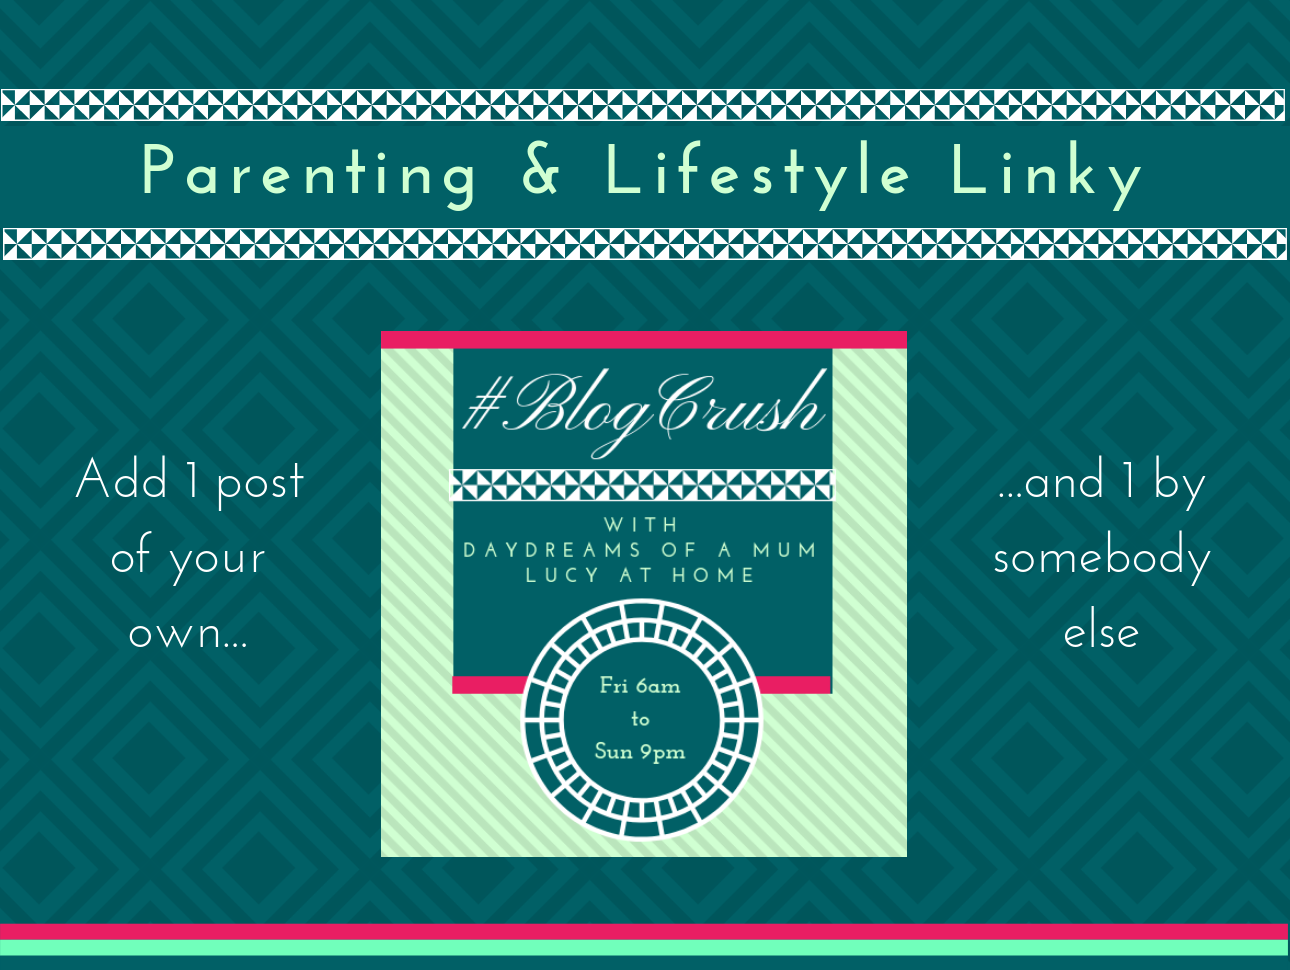 BlogCrush Linky Concept - BlogCrush Week 94